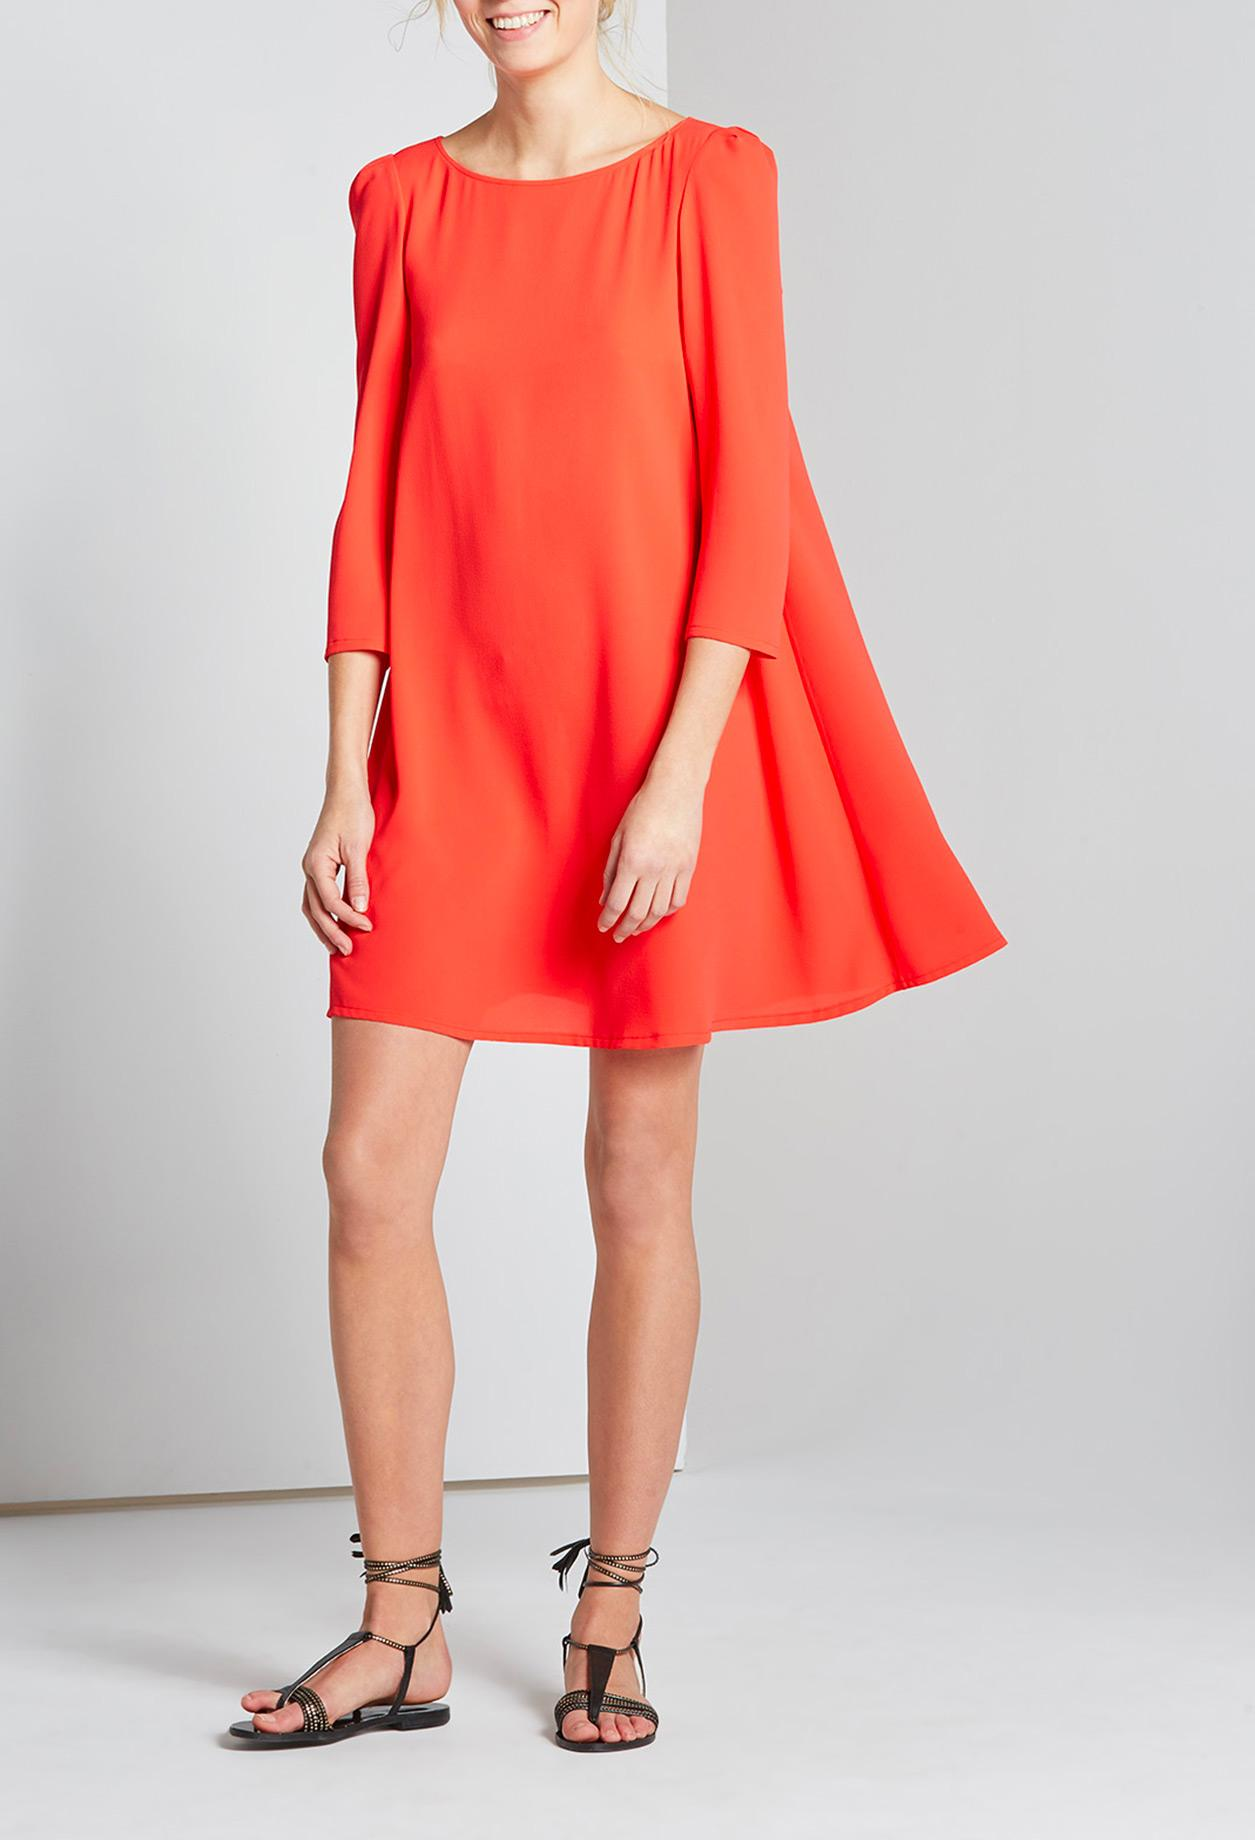 Robe rouge claudie pierlot